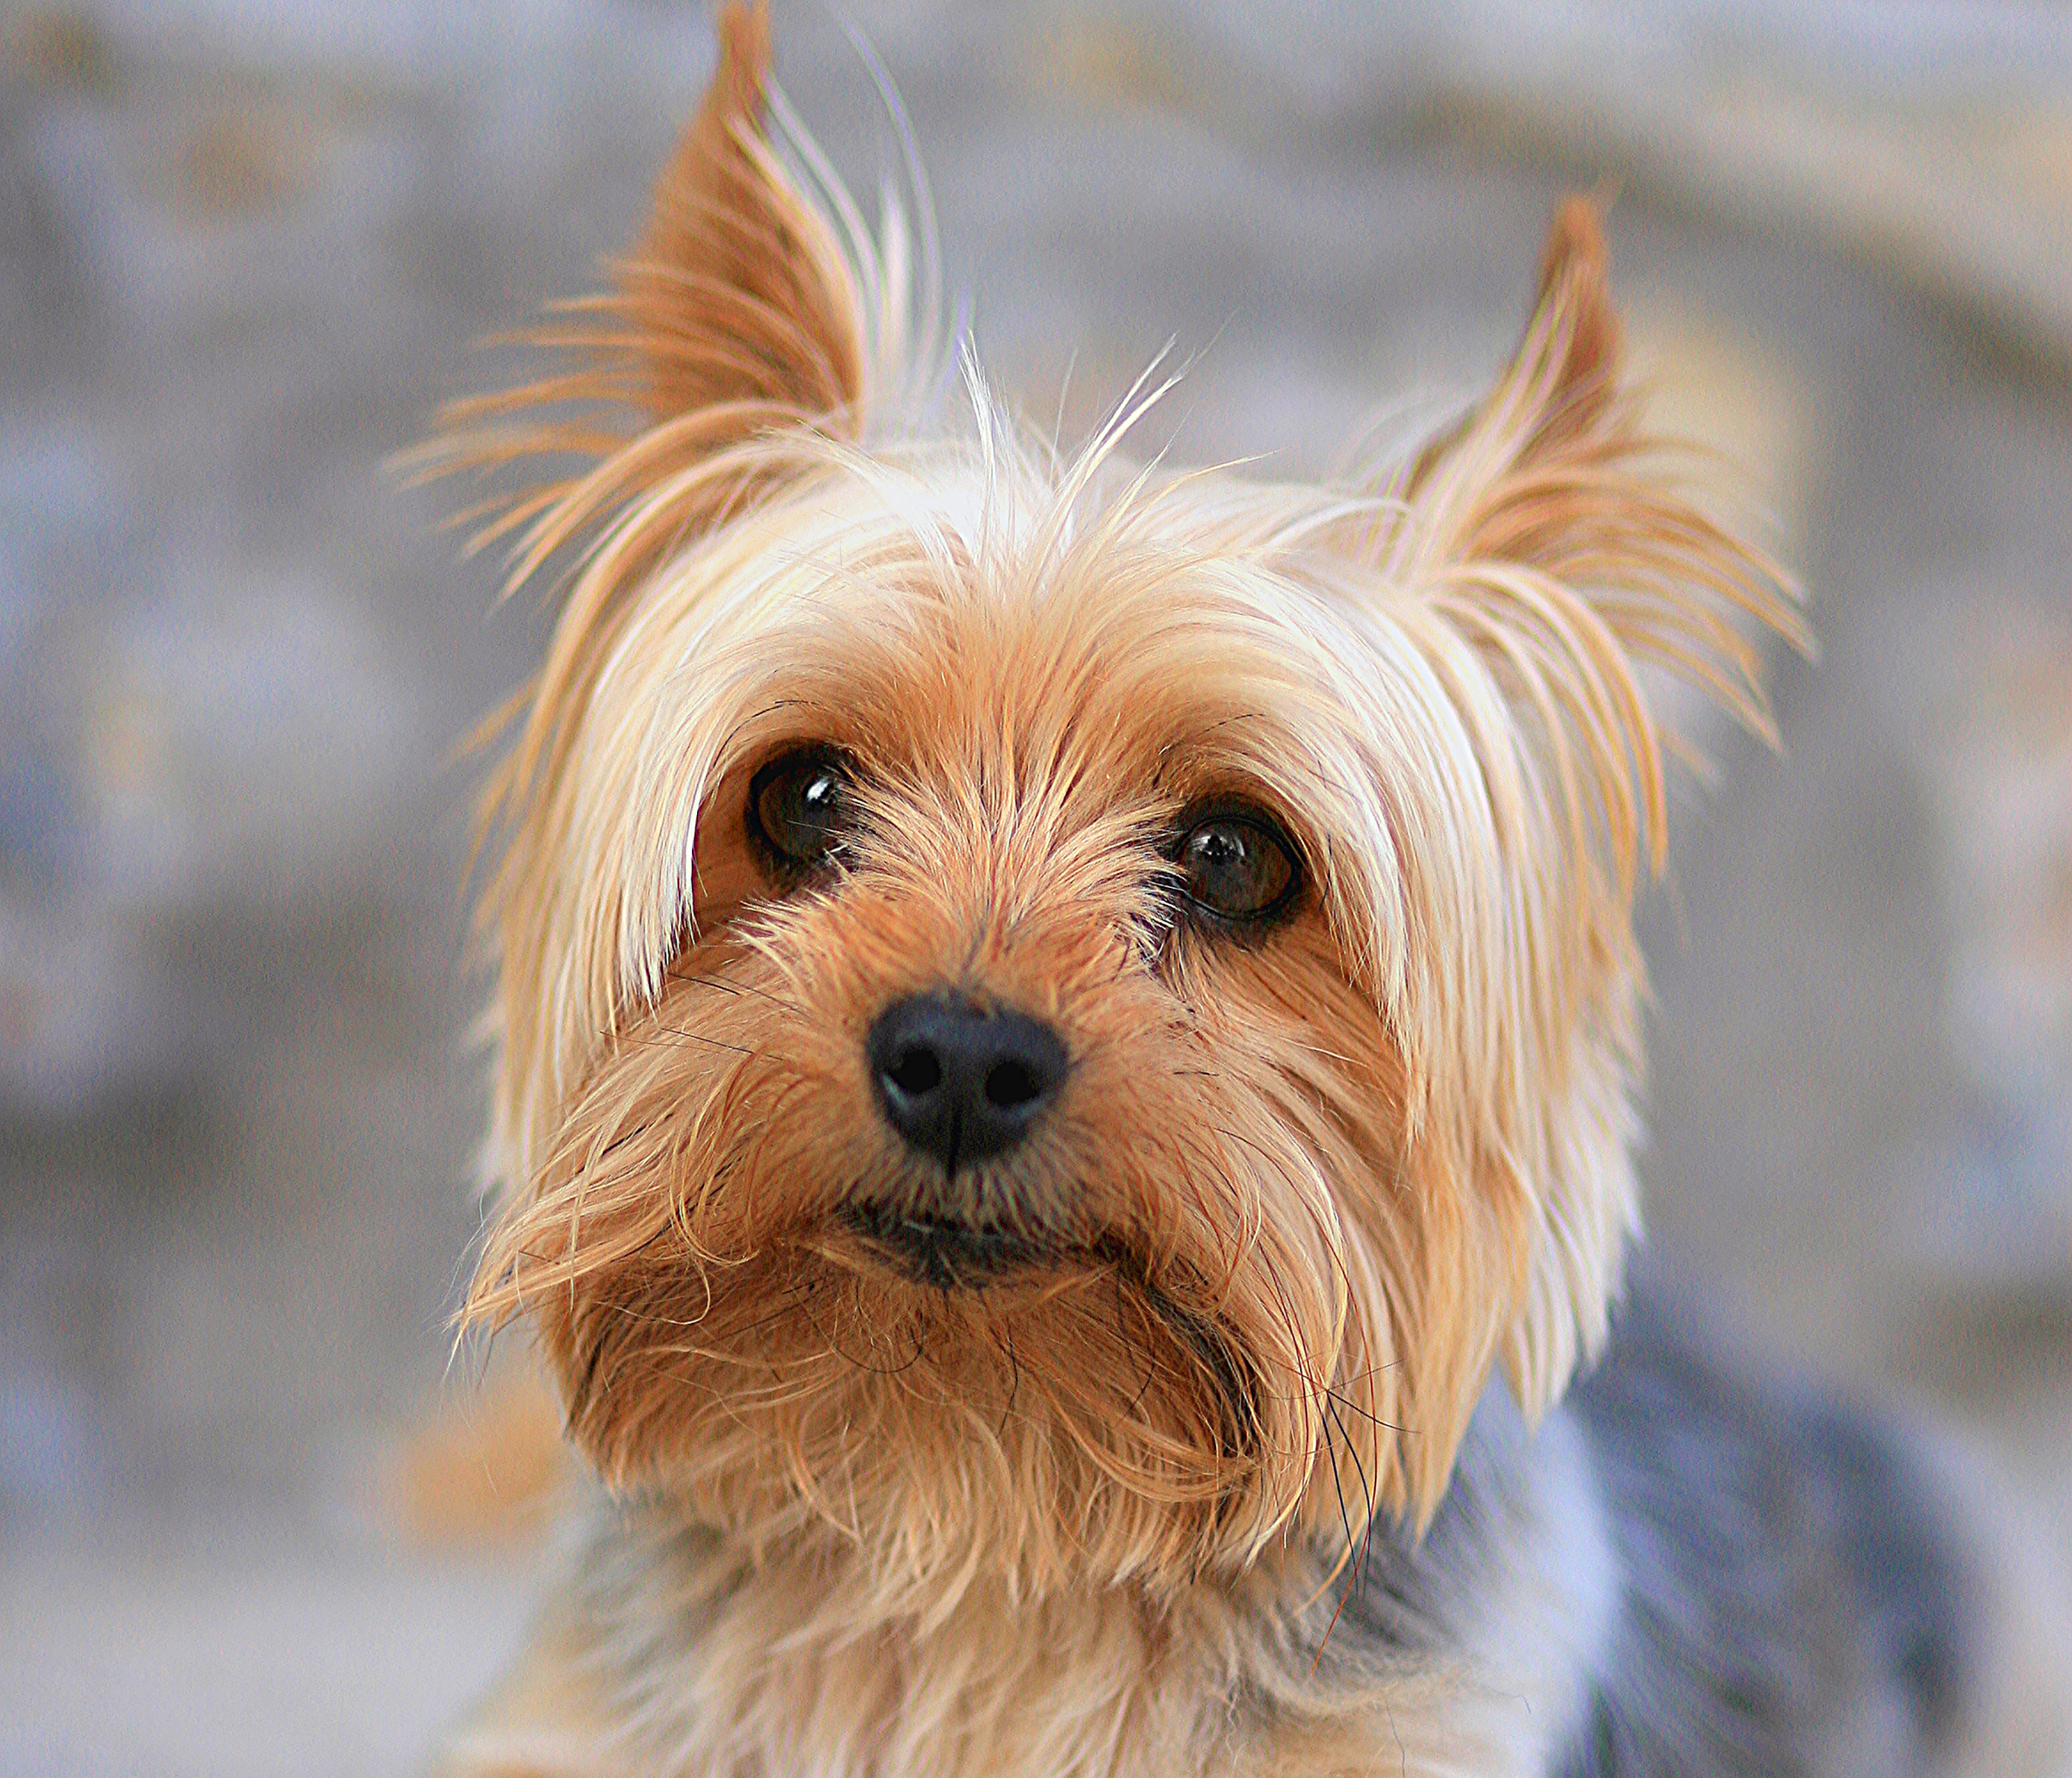 yorkie terrier breeds tracheal collapse in dogs conquering the cough 1195